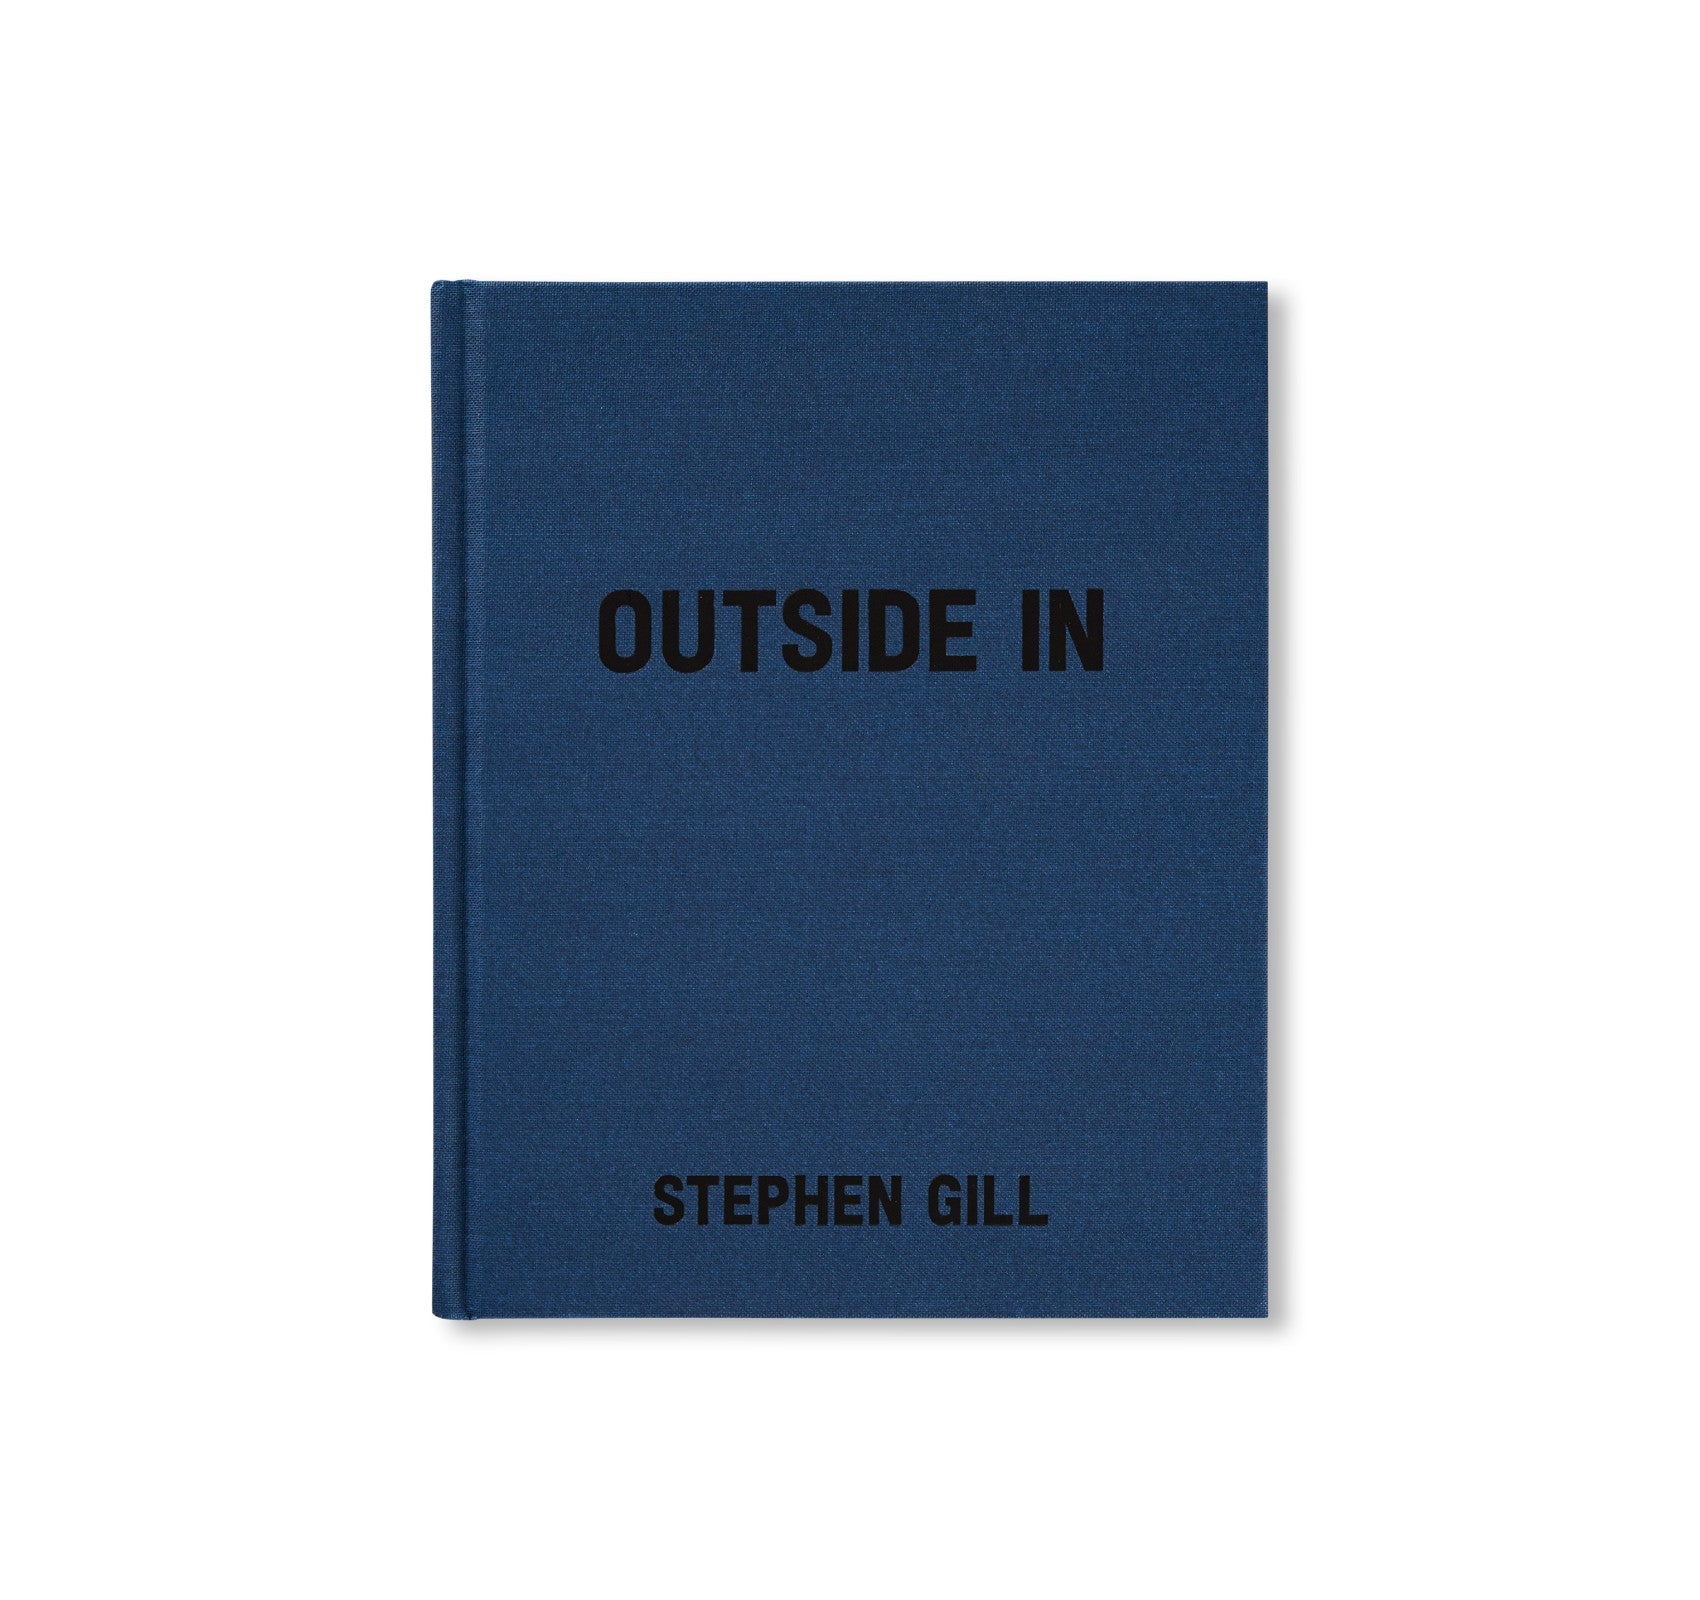 OUTSIDE IN by Stephen Gill